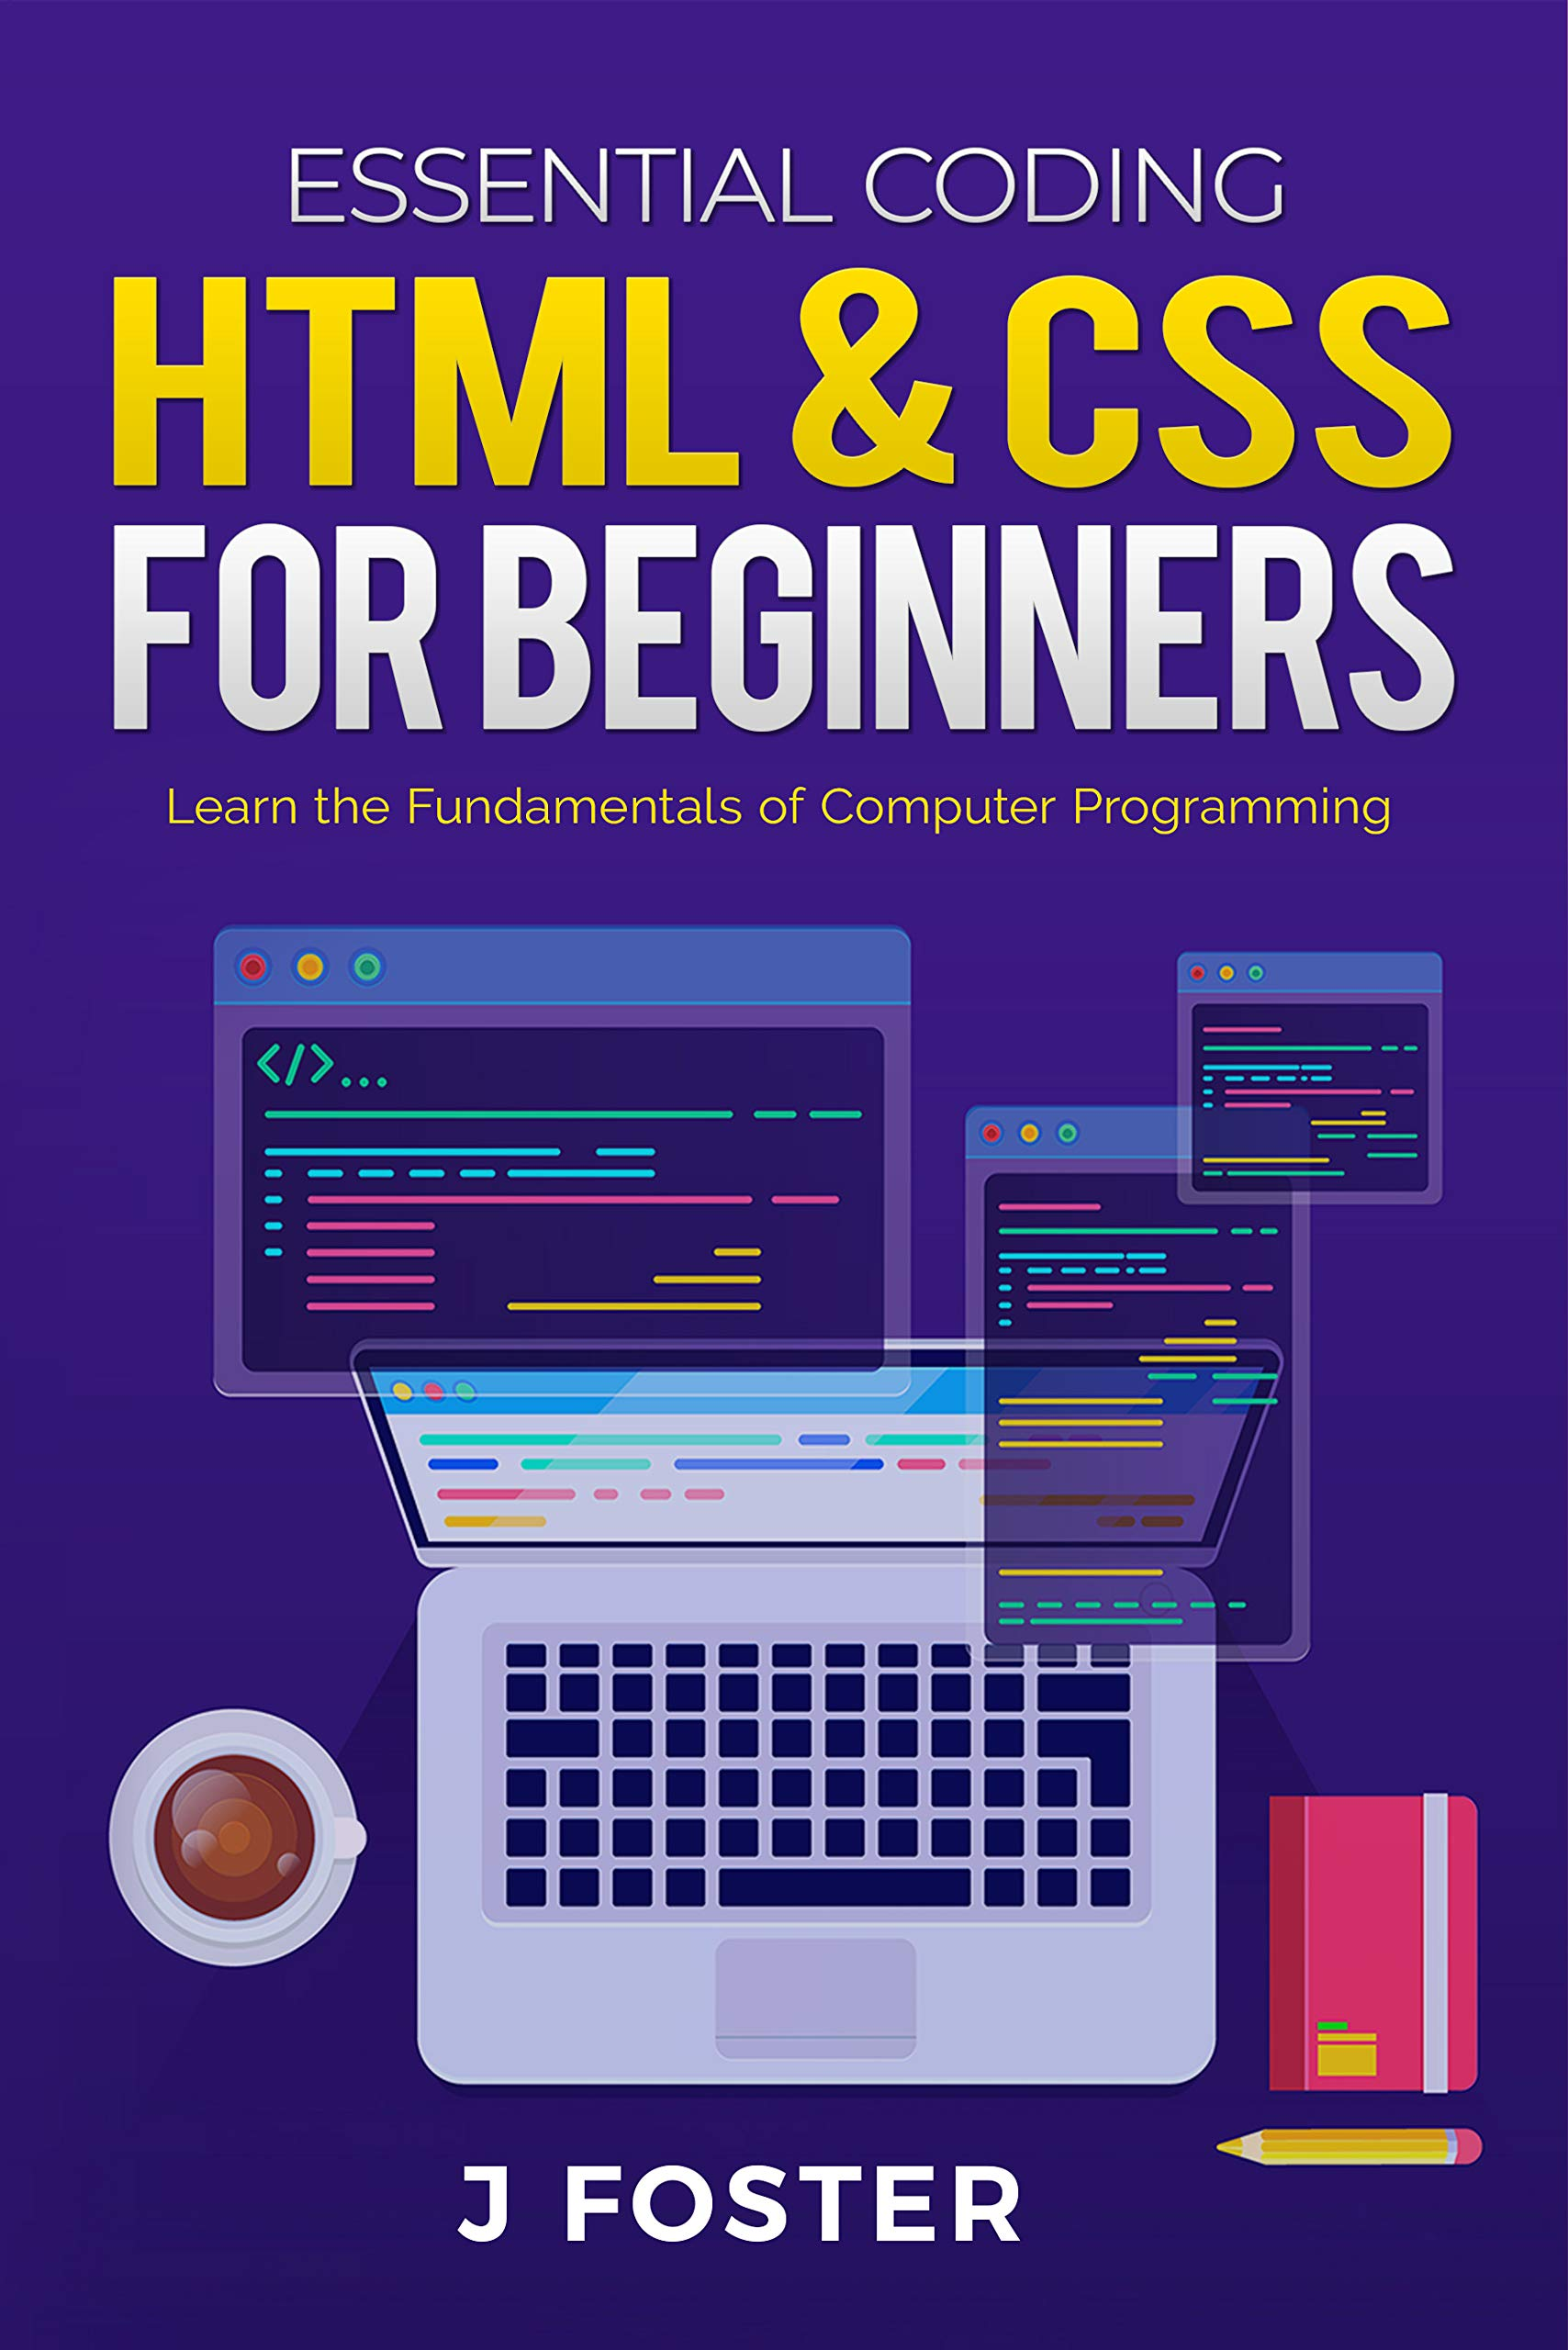 HTML & CSS for Beginners: Learn the Fundamentals of Computer Programming (Essential Coding Book 1)